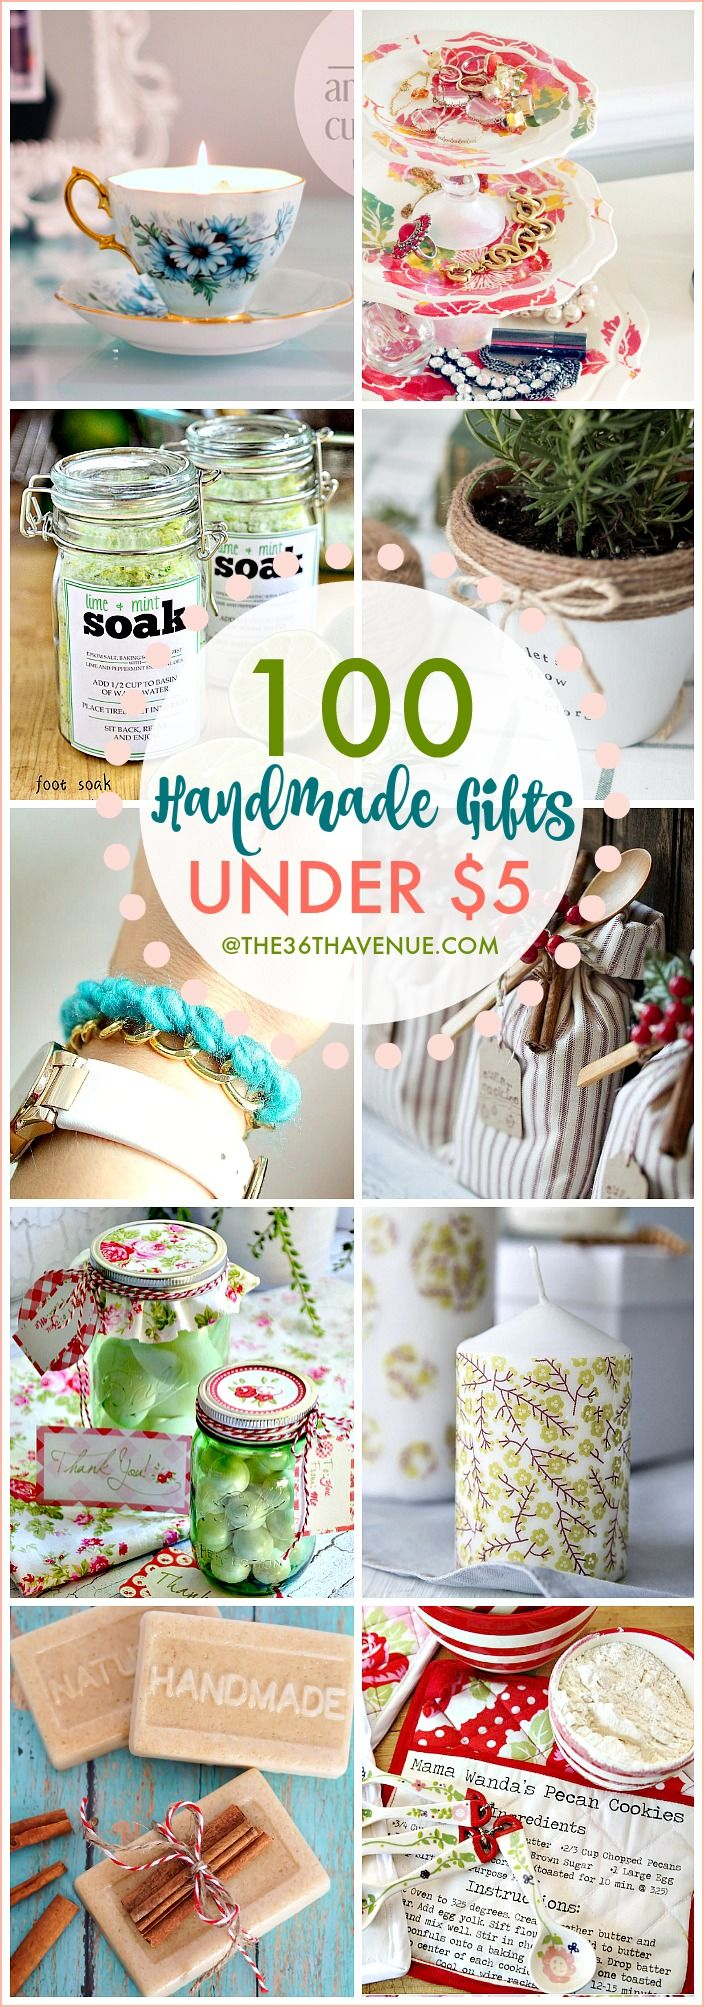 Handmade Gifts Under Five Dollars At The36thavenue